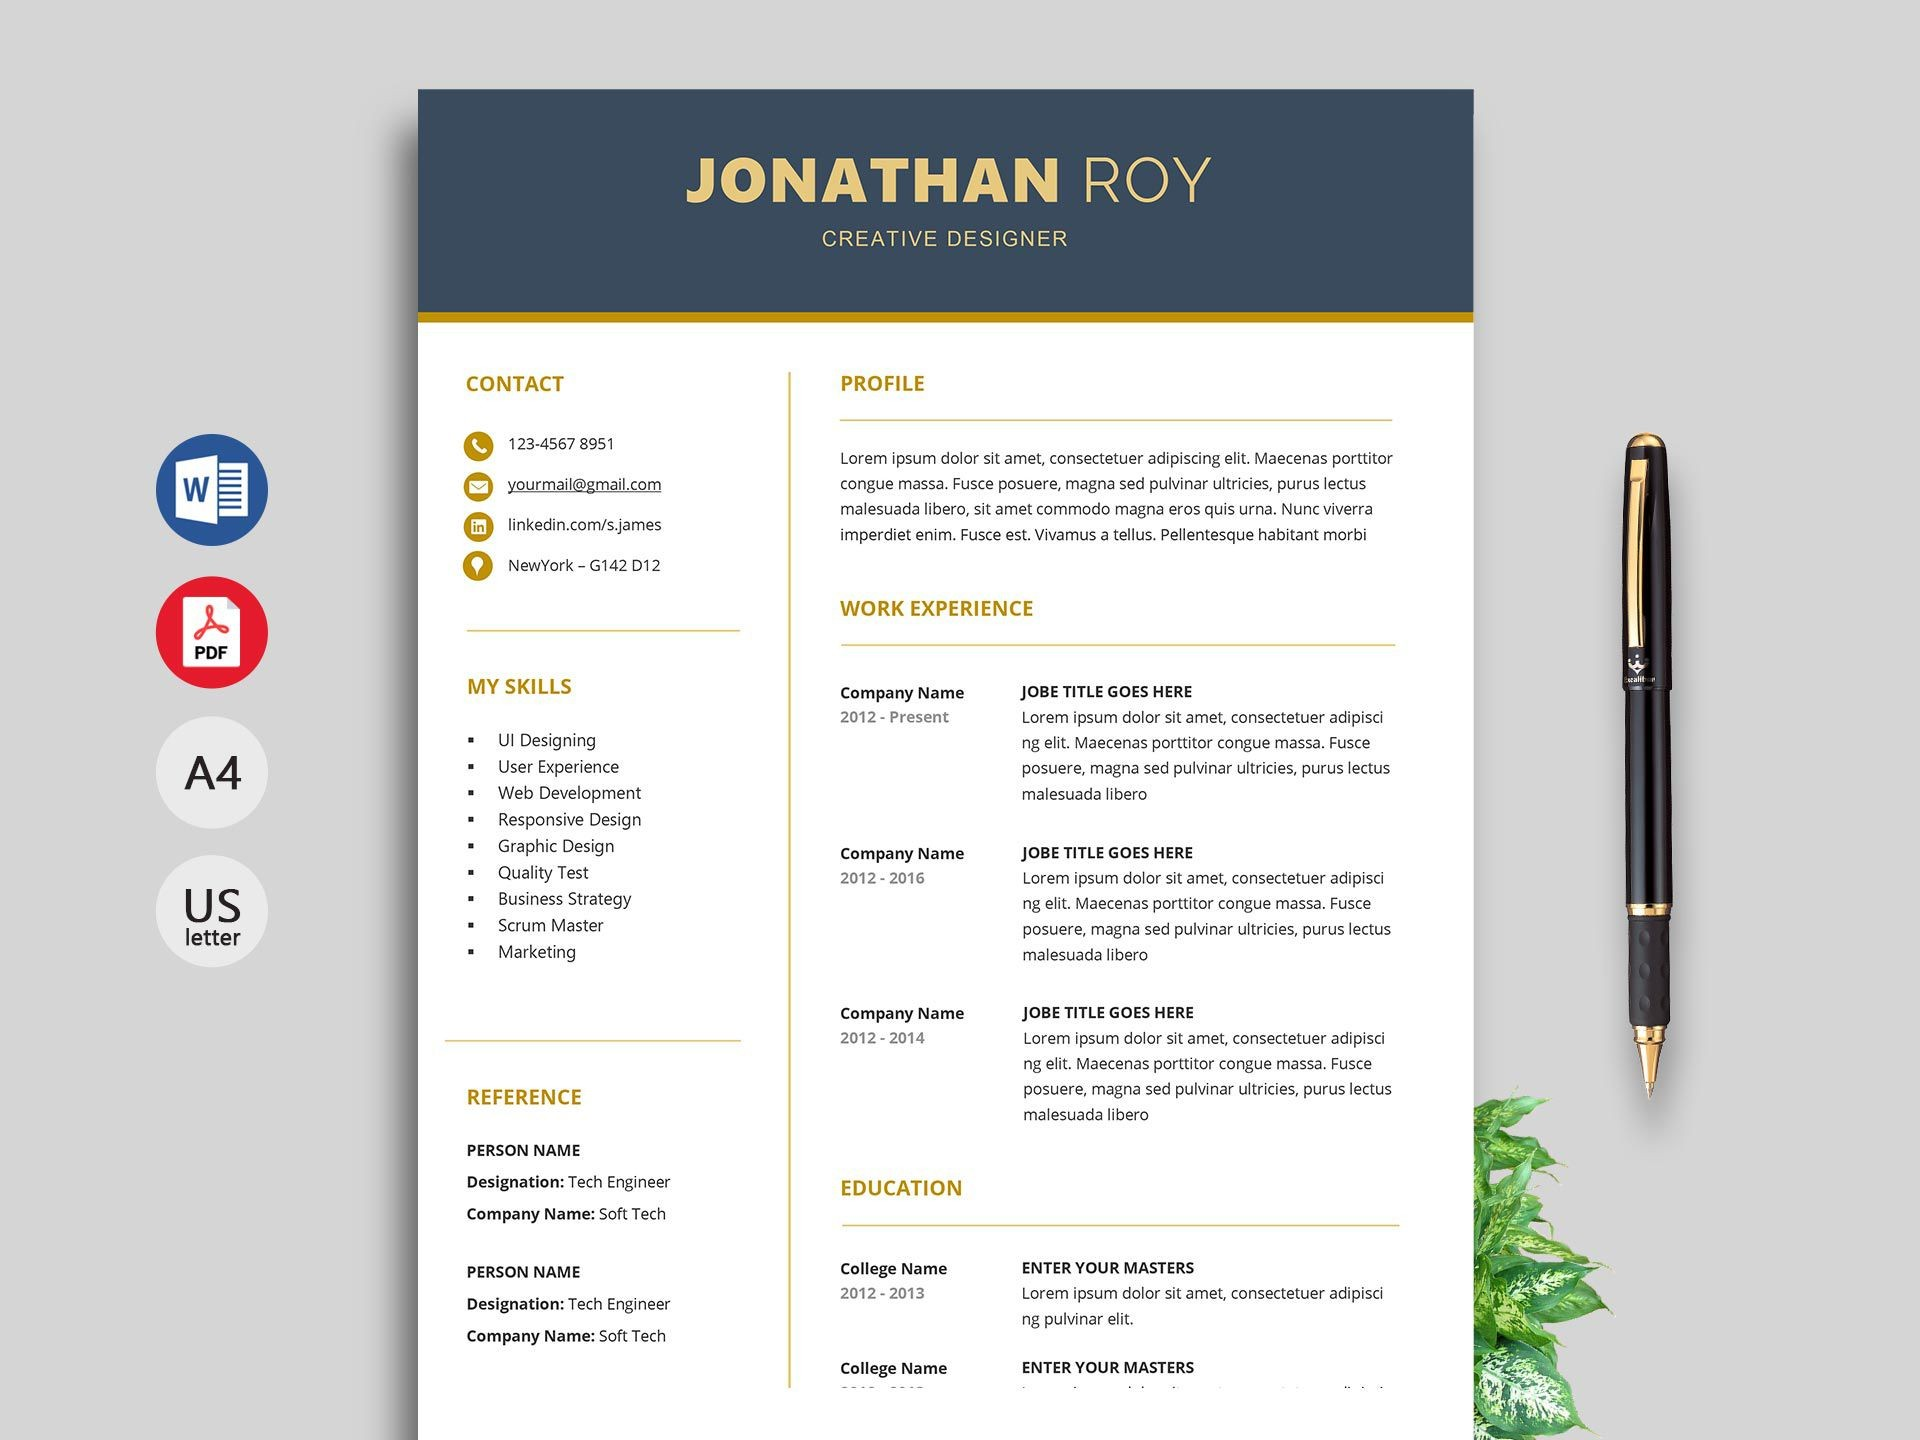 006 Unusual Resume Template Word Download Image  For Fresher In Format Free 20201920